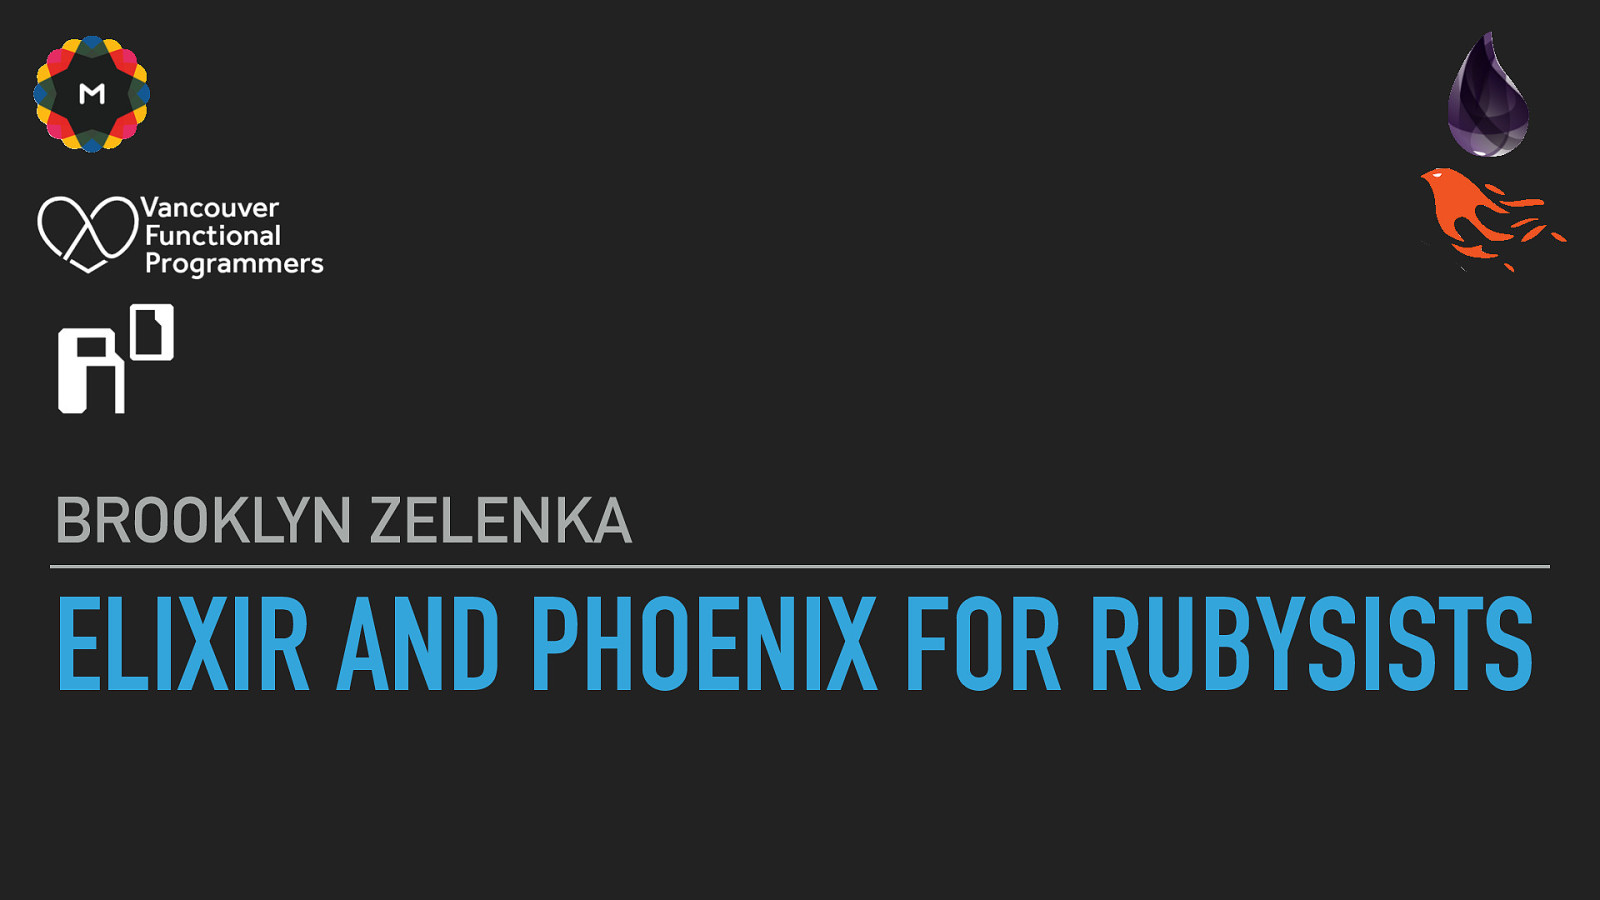 Elixir and Phoenix for Rubyists